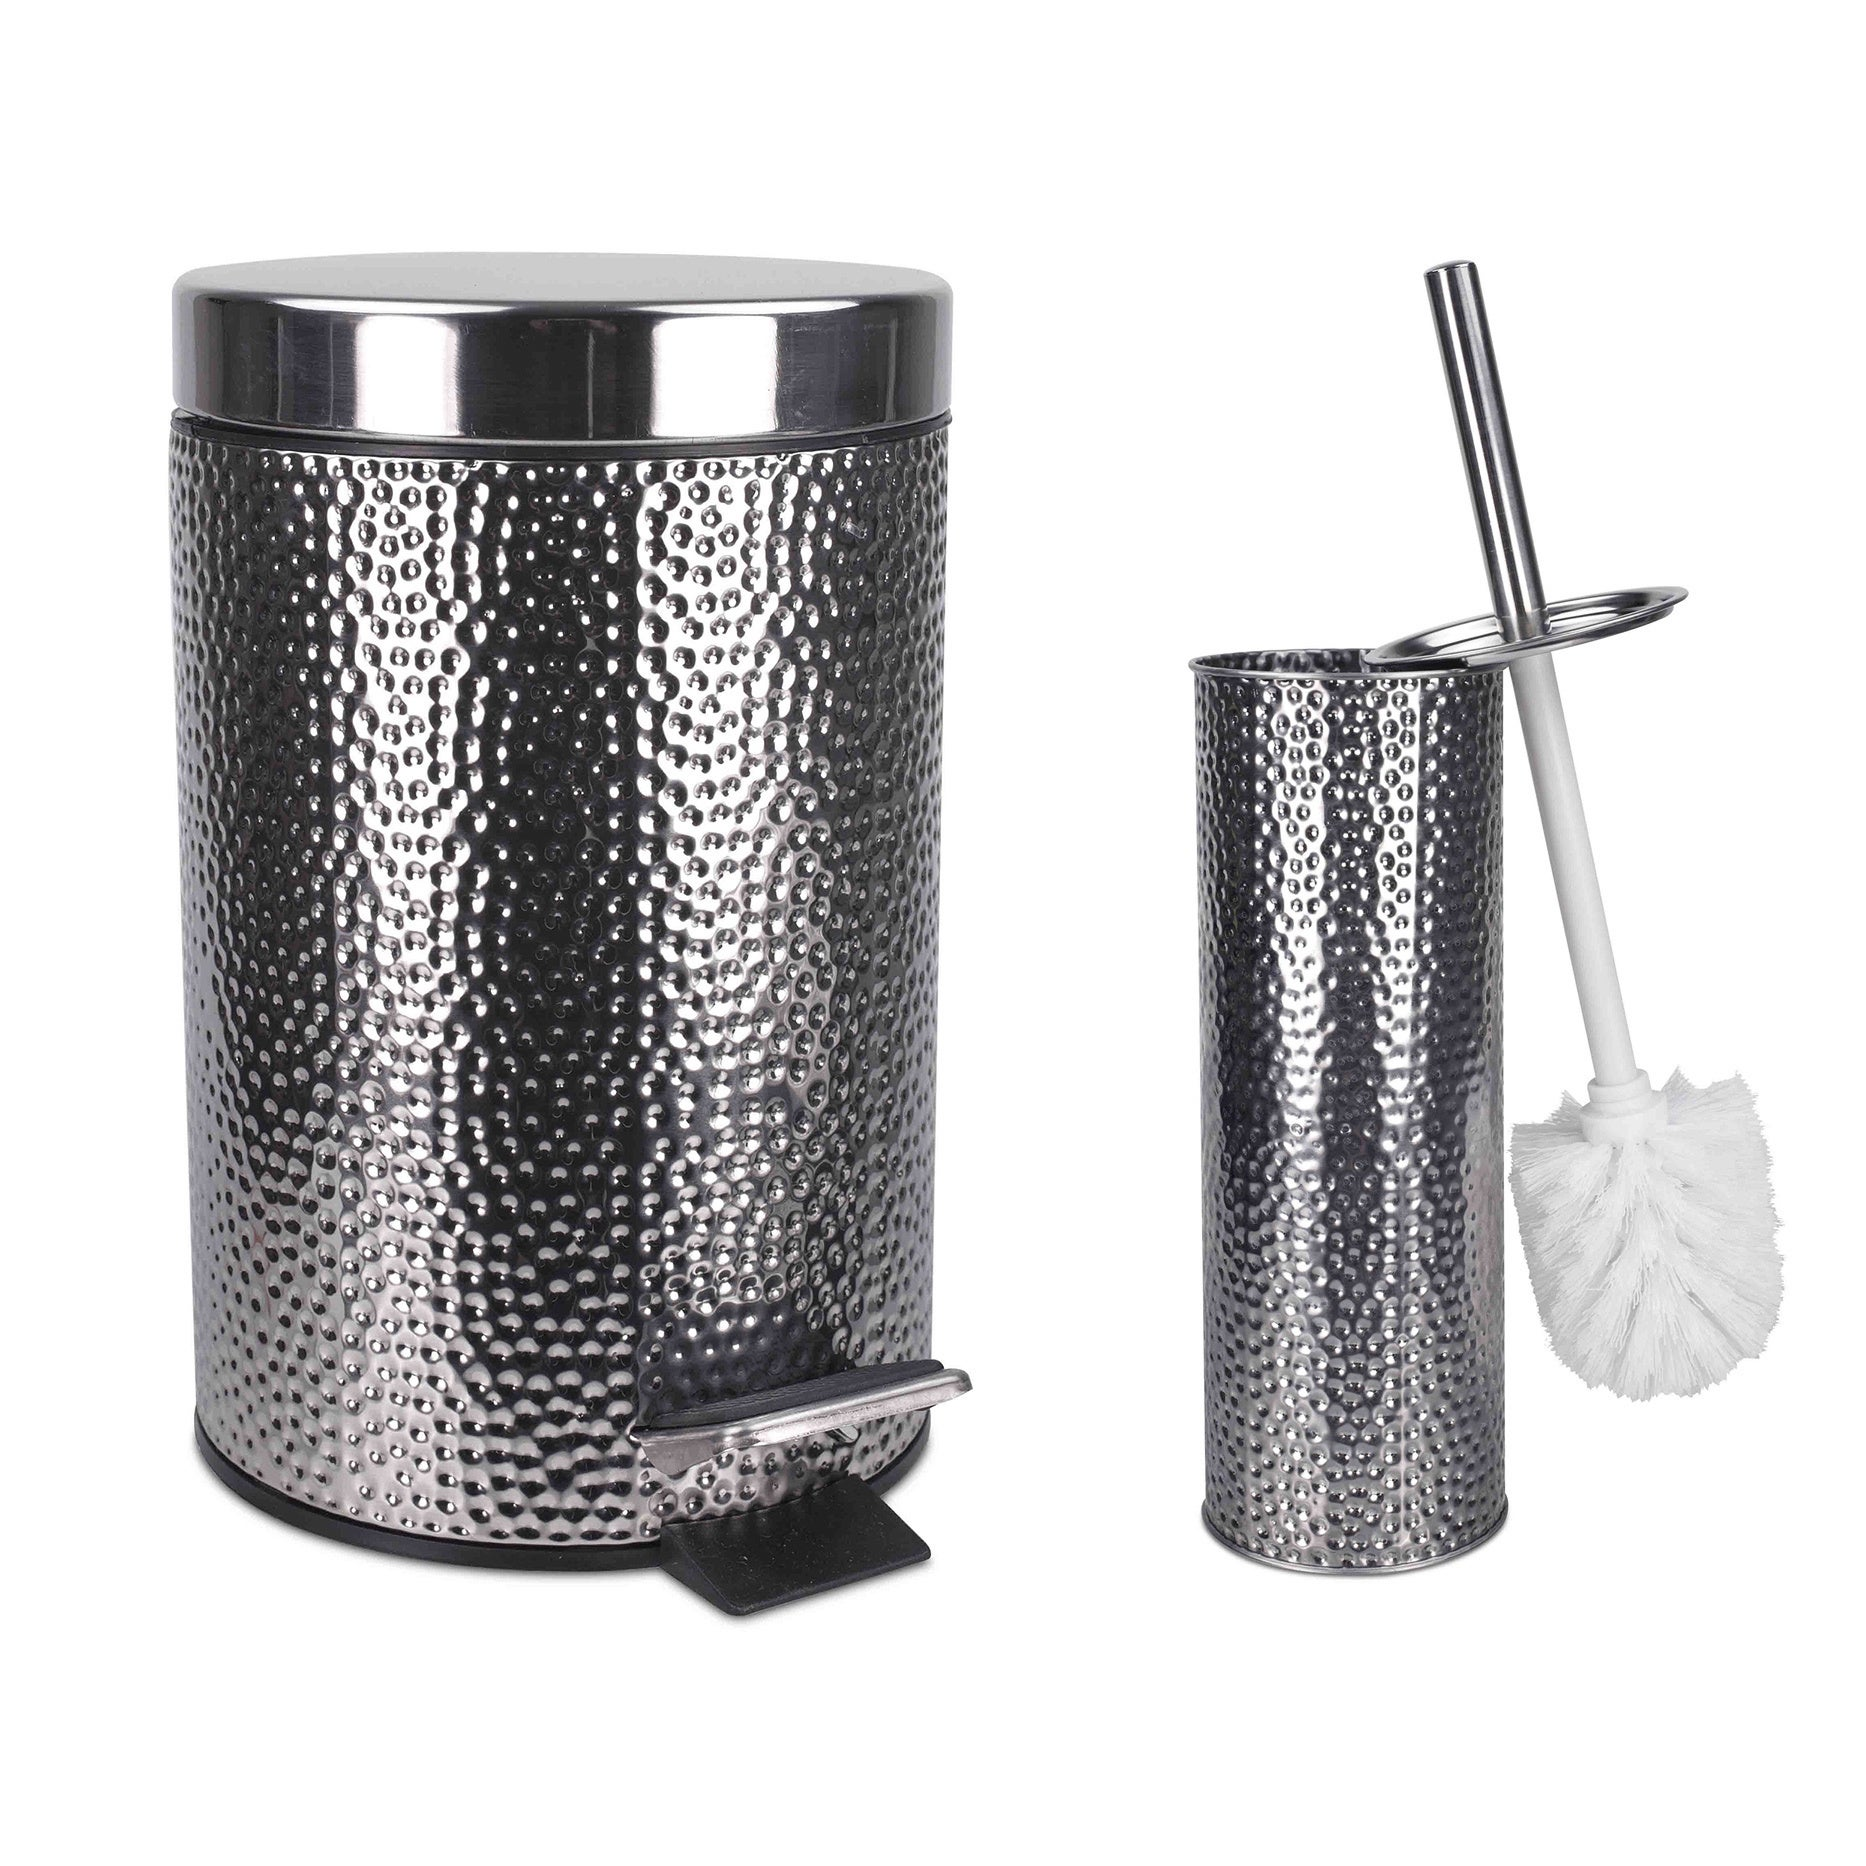 Shop Home Basics Deluxe Hammered Stainless Steel Bathroom ...